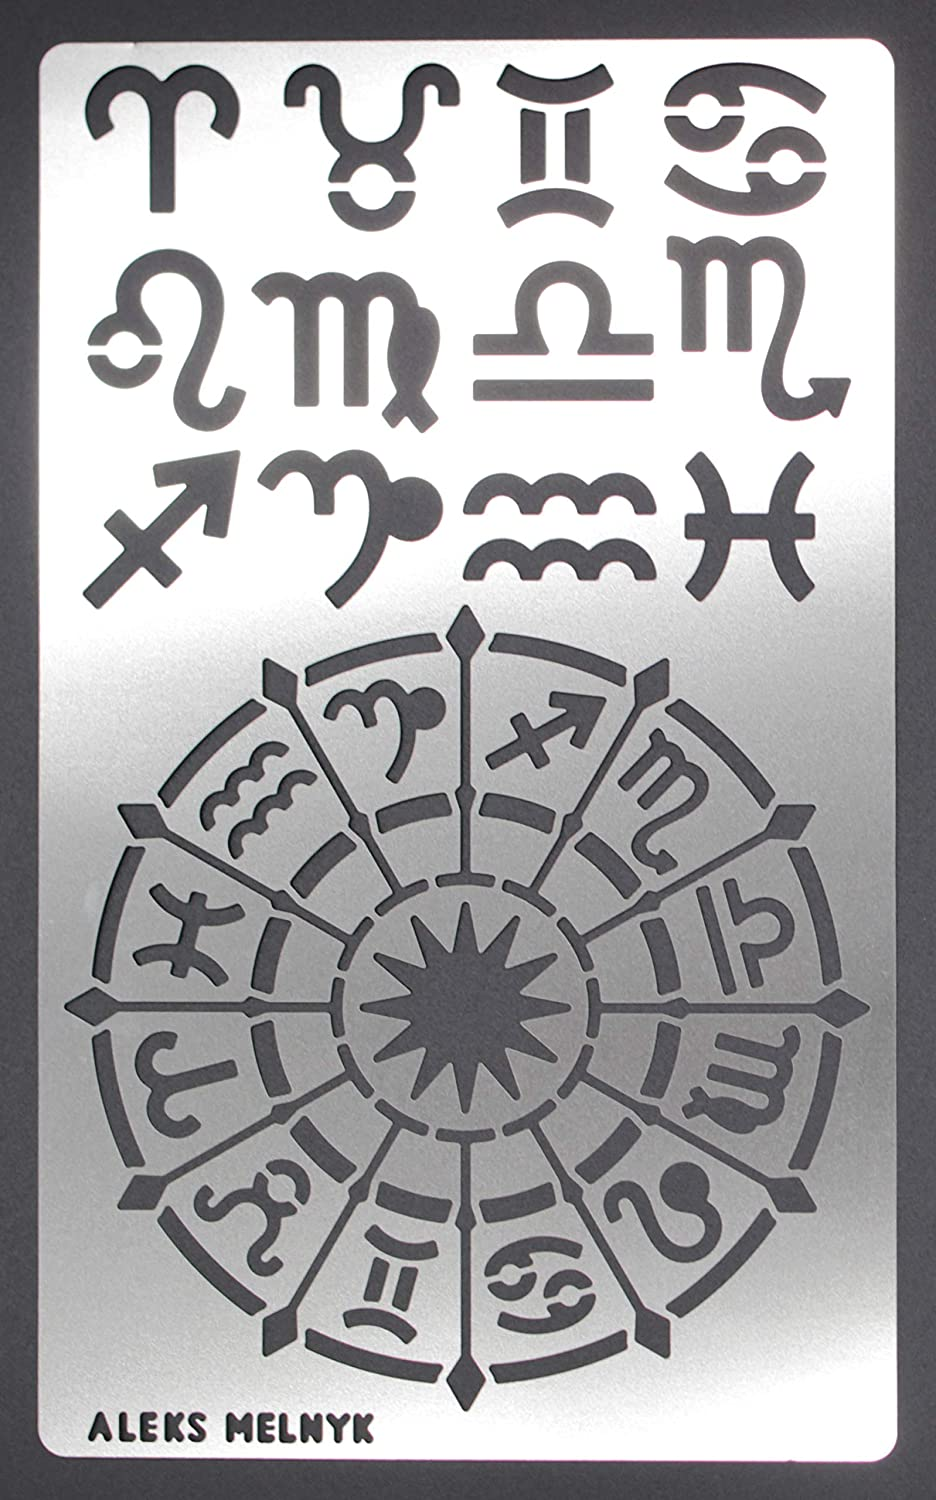 Astrology//Stainless Steel Stencils Kit 2 PCS//Template Tool for Wood Burning Aleks Melnyk #29 Metal Journal Stencils//Zodiac Signs Pyrography and Engraving//Scrapbooking//Crafting//DIY